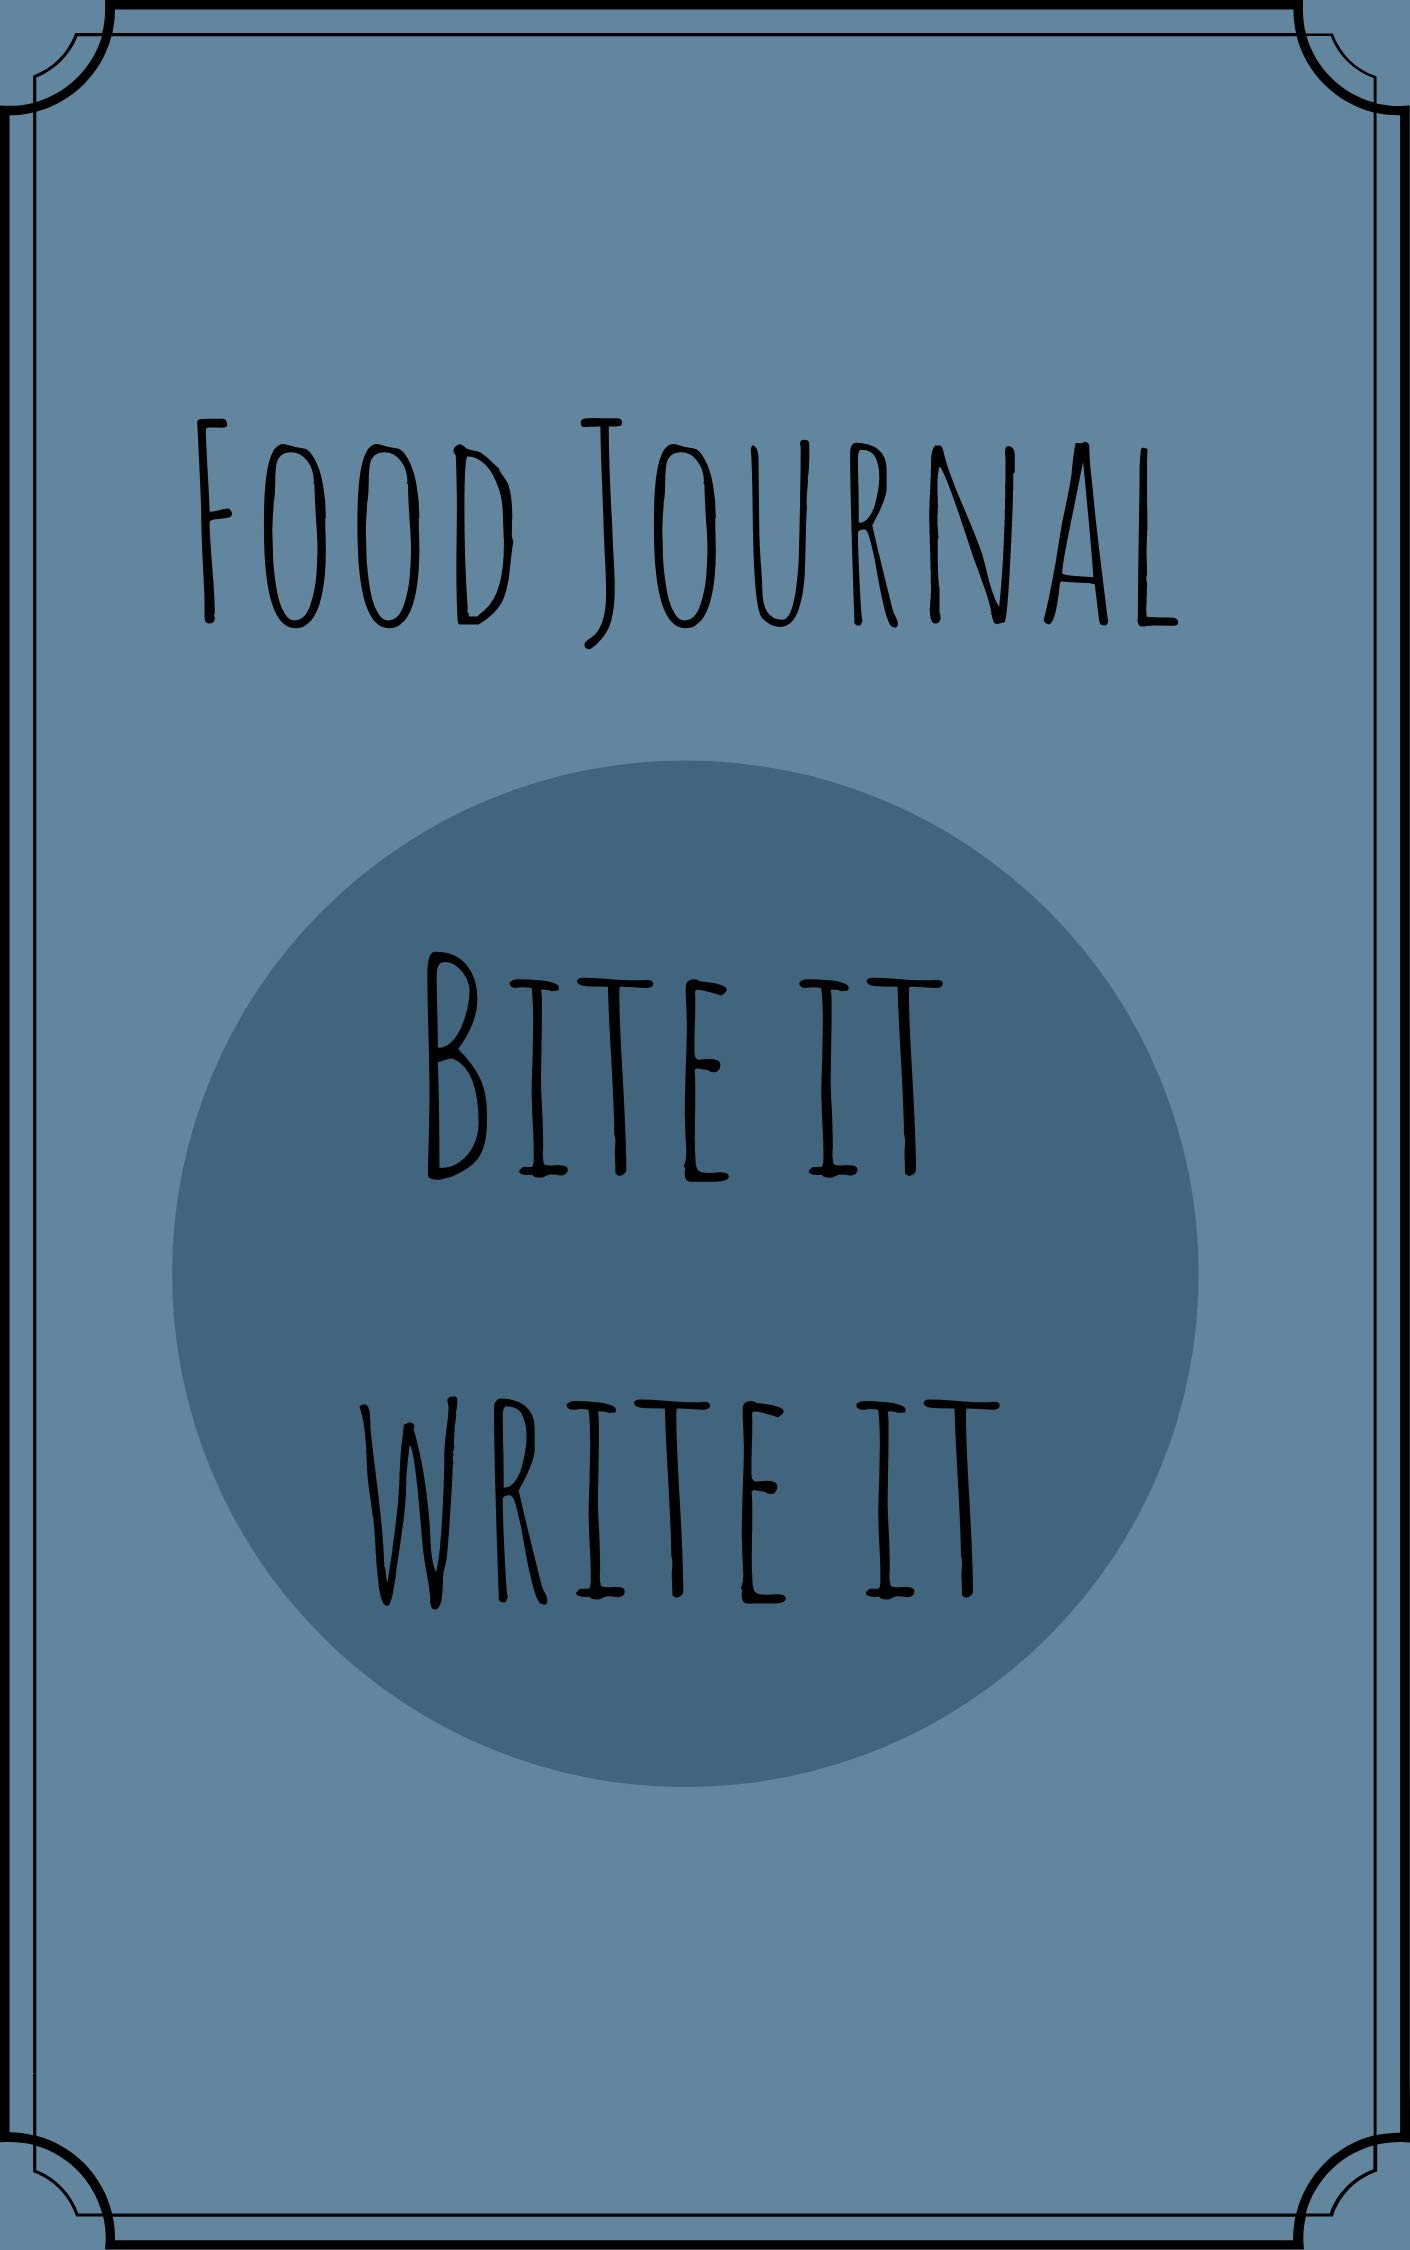 Food Journal: Track your food, 6x9 110 pages plus BMI tracker before and after, Ebook download and print at home: Food Tracker